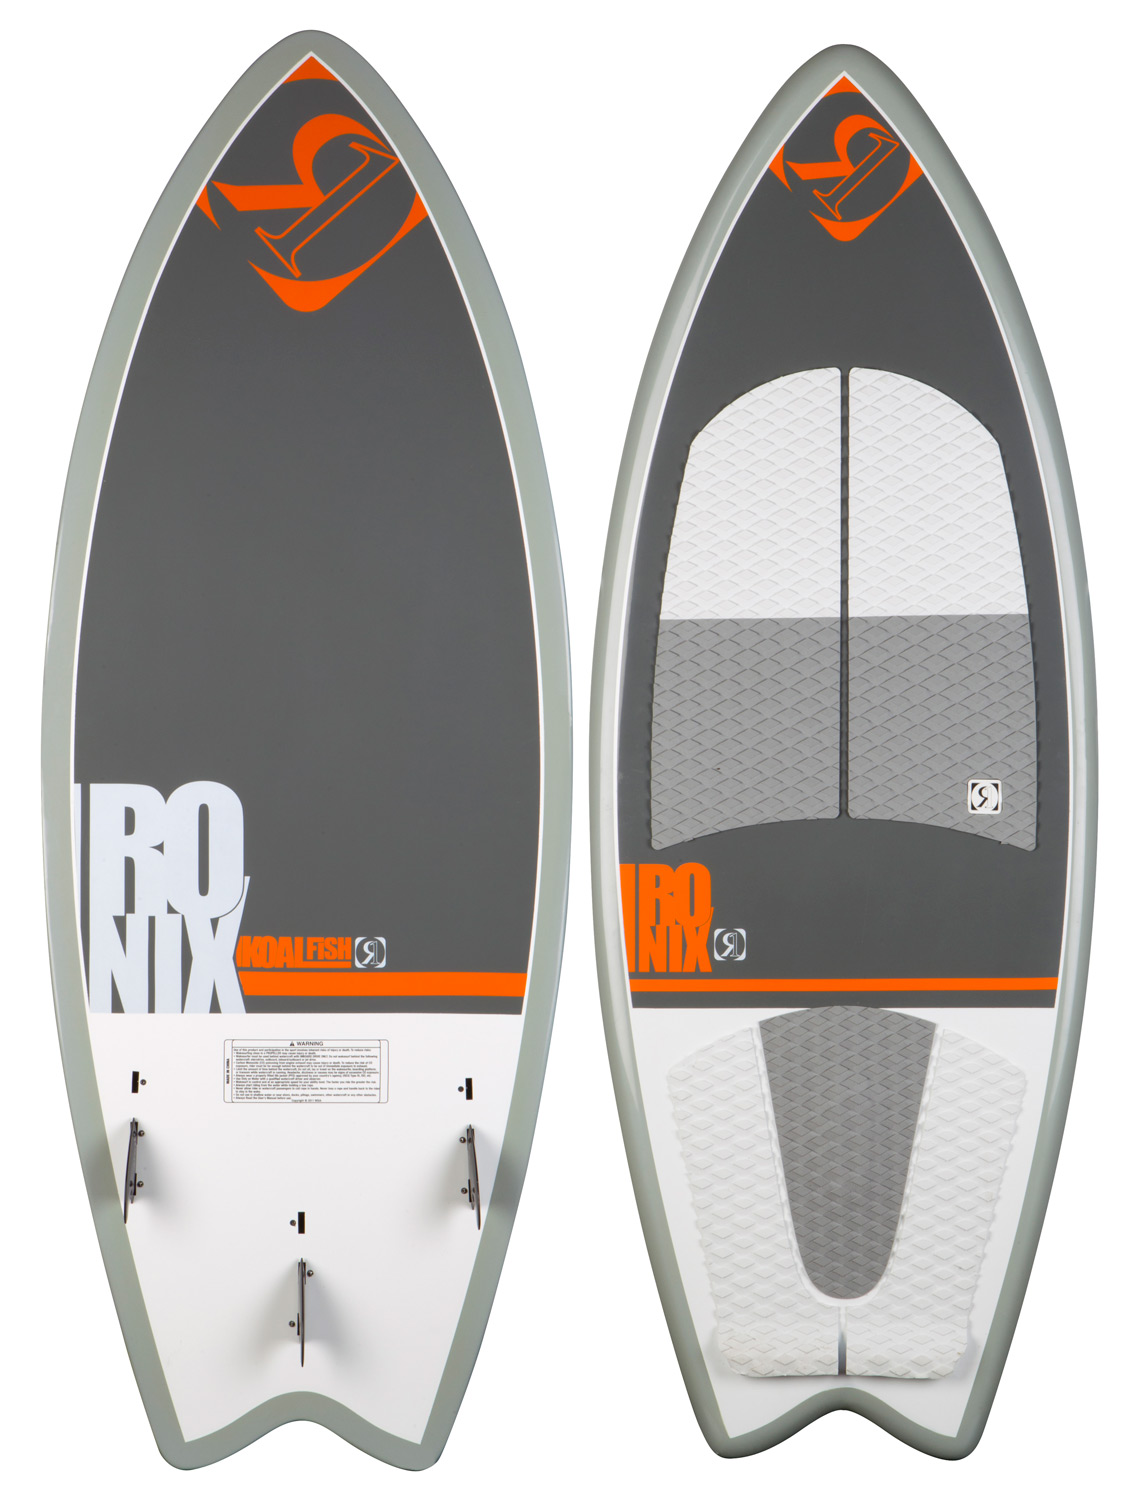 "Surf Over a decade of designing wake surfboards has resulted in our latest version of our top selling Koal series with new adjustable fin options - giving the rider the ability to customize their ride for a tighter or looser feel. A fish profiled ""fun"" board - the Koal can throw the deck on rail with the versatility to break free on the top of the wake, yet still has the versatility to throw a bucket on the lip with it's reactive 3 fin recessed fin block and fast profile. This speedy shape rides high on the water with a full rail and our exclusive surf constructed core creating more glide speed. The Koal's shape and construction is a perfect ride for inlanders looking for a universal ride with wake slashing performance. Available in 3 lengths covering the spectrum of riders and wake sizes. Throw your fin screws away - the Koal series comes with cleaner profiled fins that have a fin box recessed right into the board.Key Features of the Ronix Koal Fish Wakesurfer: Machined EVA top deck with built in tail wedge A fast rocker line, with a hard edging/stable profile and rail design Surf specific 2.9"" bottom mount fins Surf constructed - lighter, faster, more buoyant, and yes more fragile (handle with care) Epoxy Construction - harder resin equals a stronger board The soul of surfing is ridden by the former WWA World Champion Dean Smith and WWA National Champion Adam Errington - $430.95"